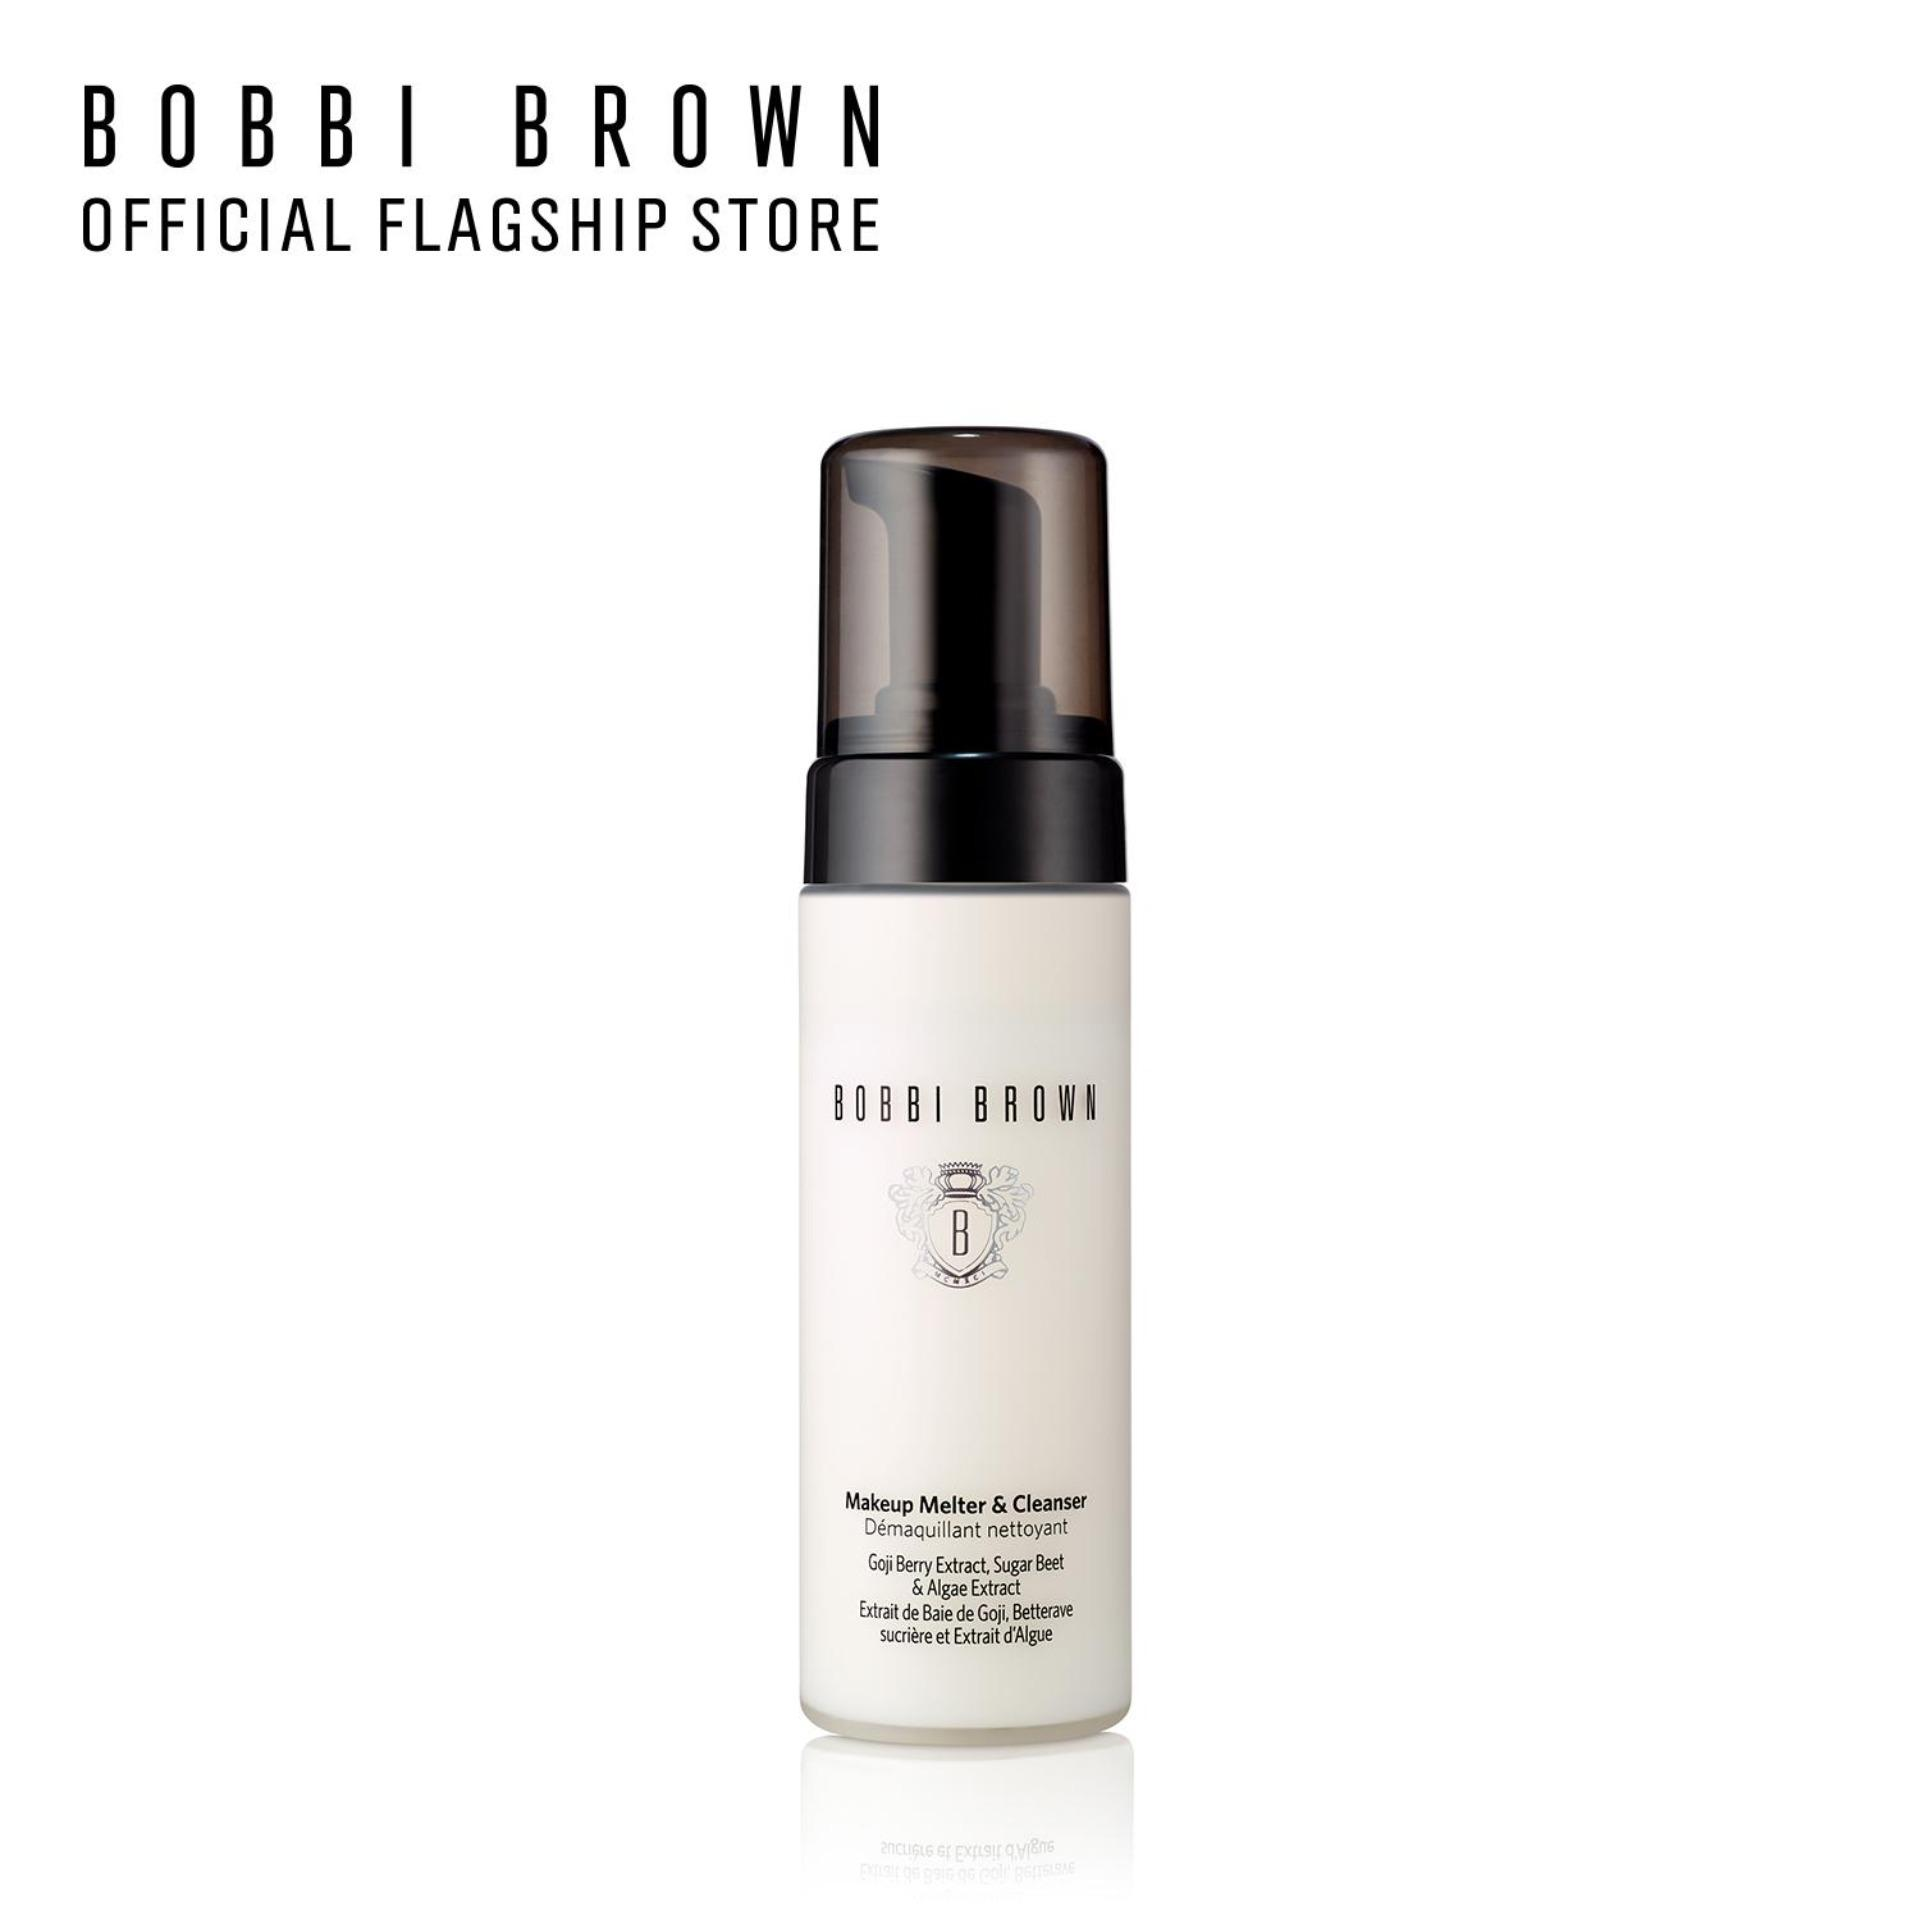 Tẩy trang 3 trong 1 Bobbi Brown Makeup Melter & Cleanser 150ml